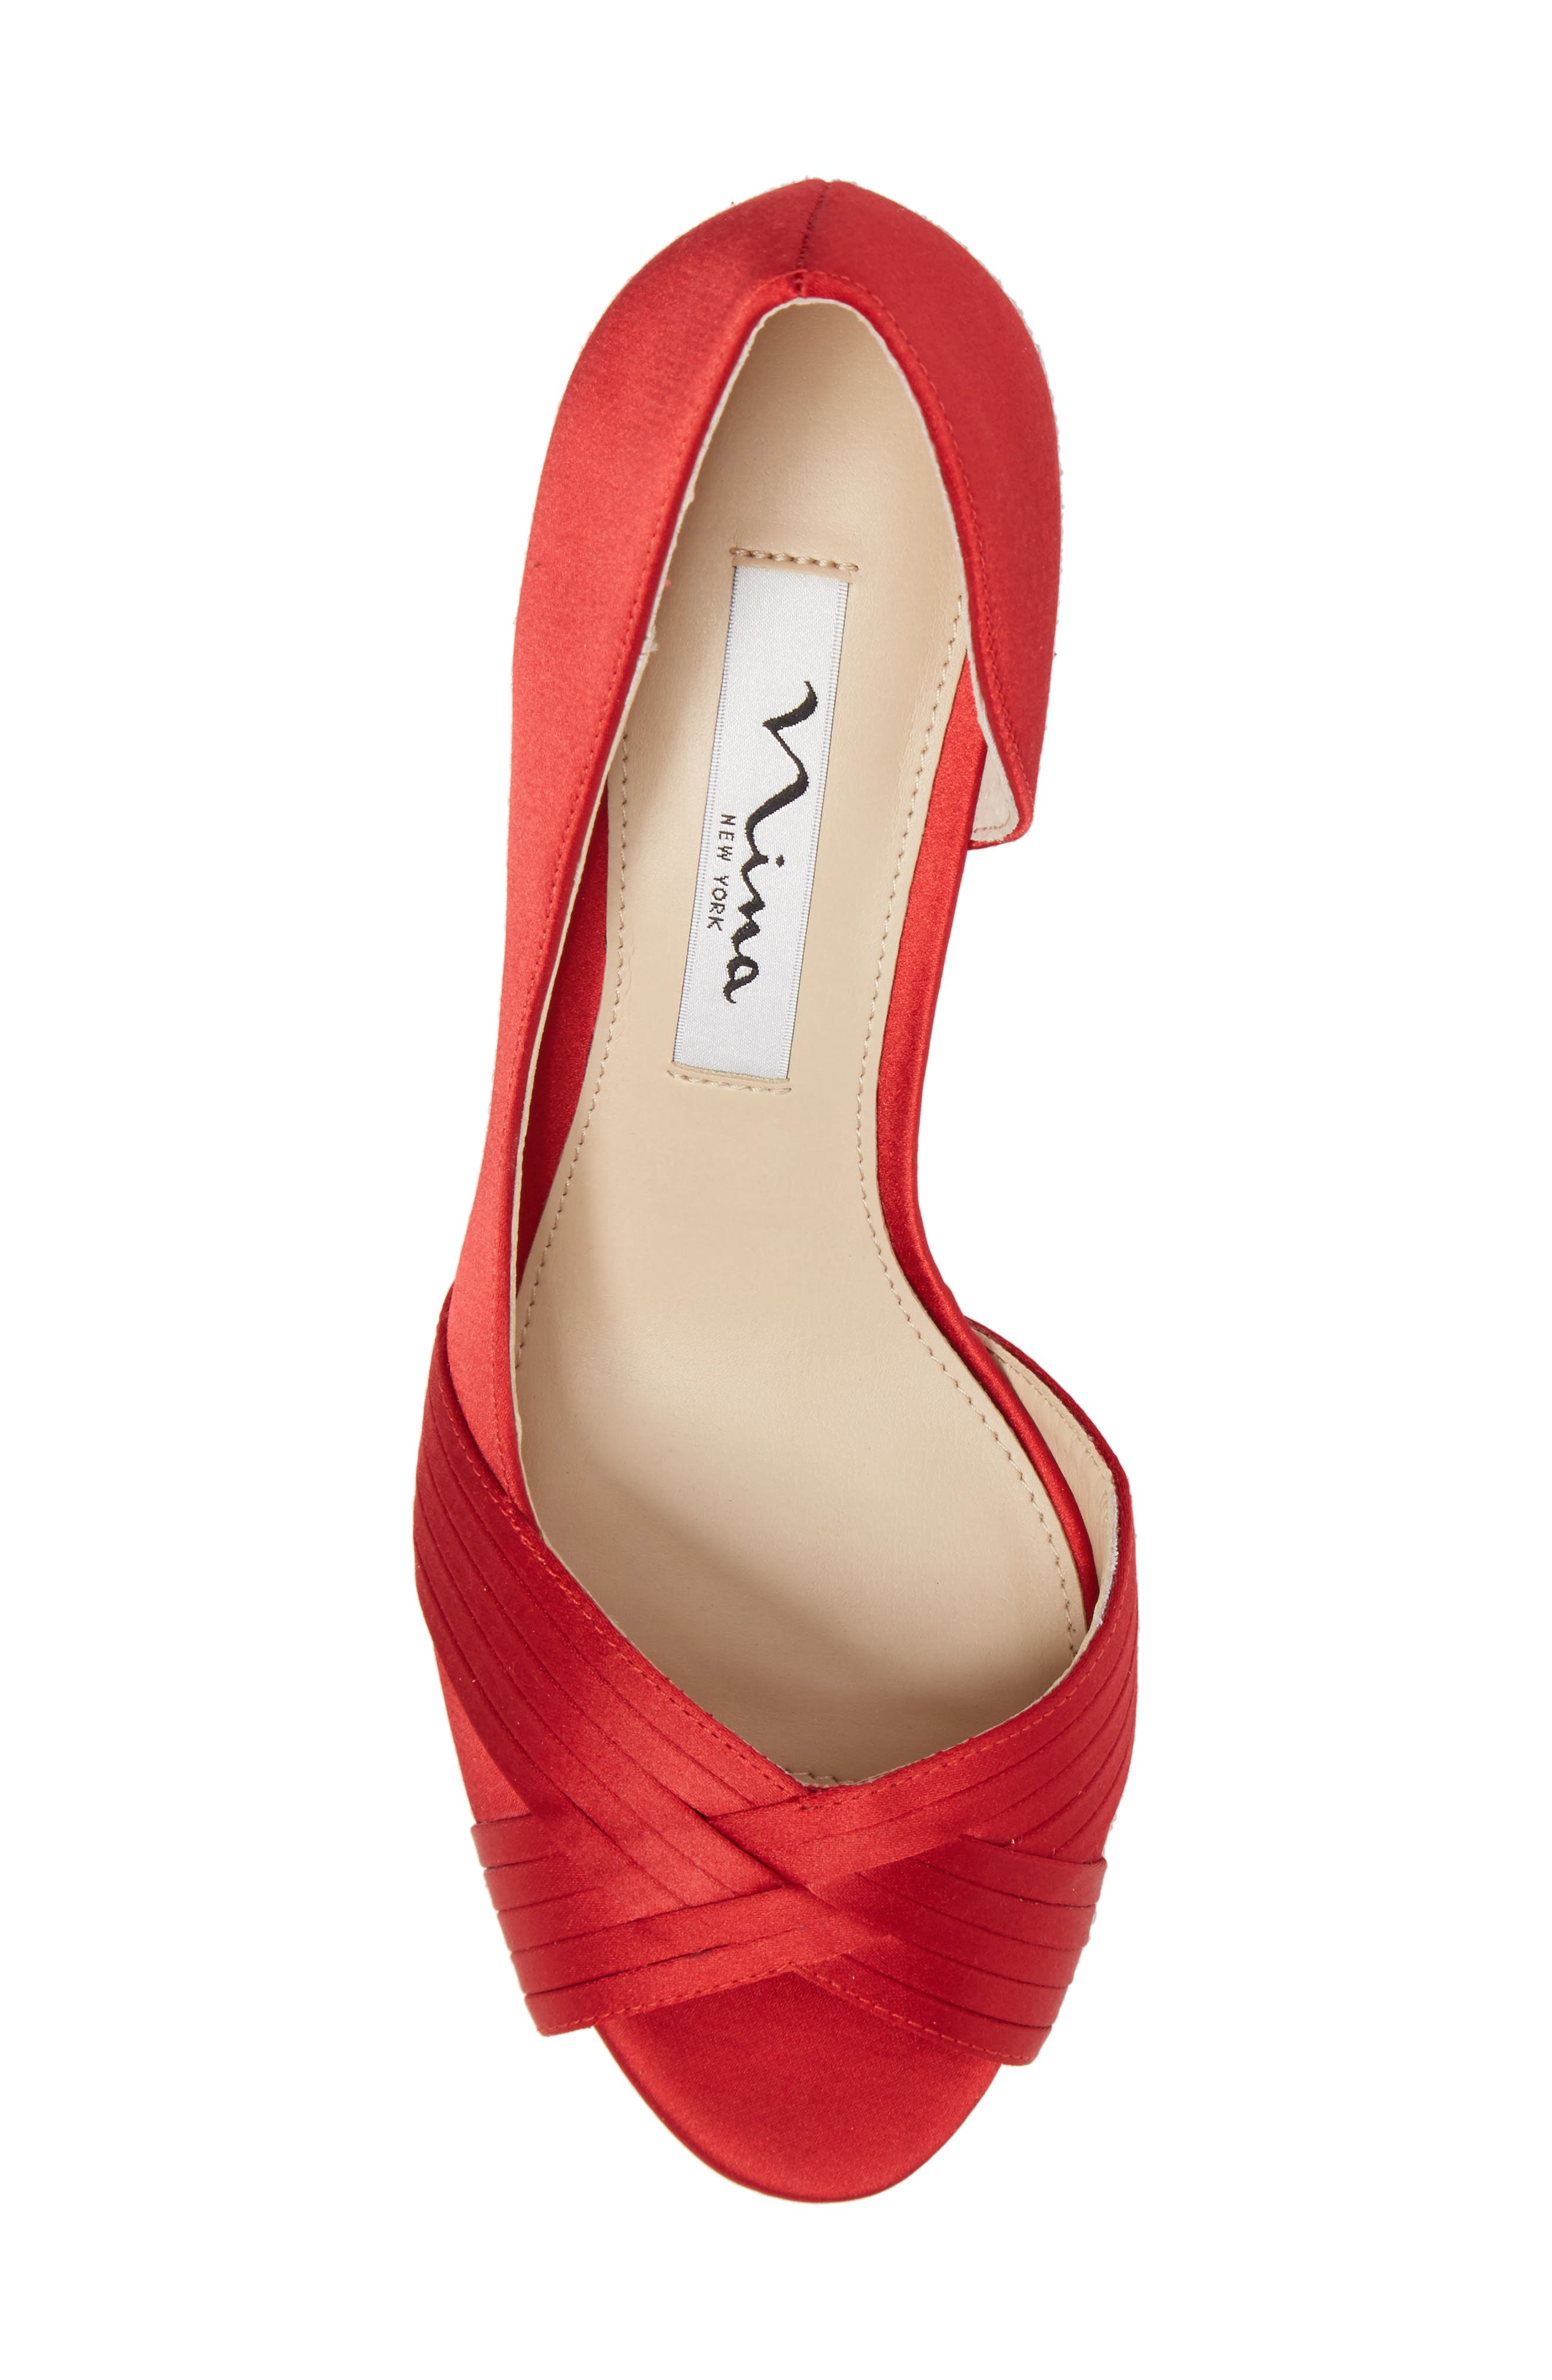 Contesa Open Toe Pump,                             Alternate thumbnail 5, color,                             RED SATIN